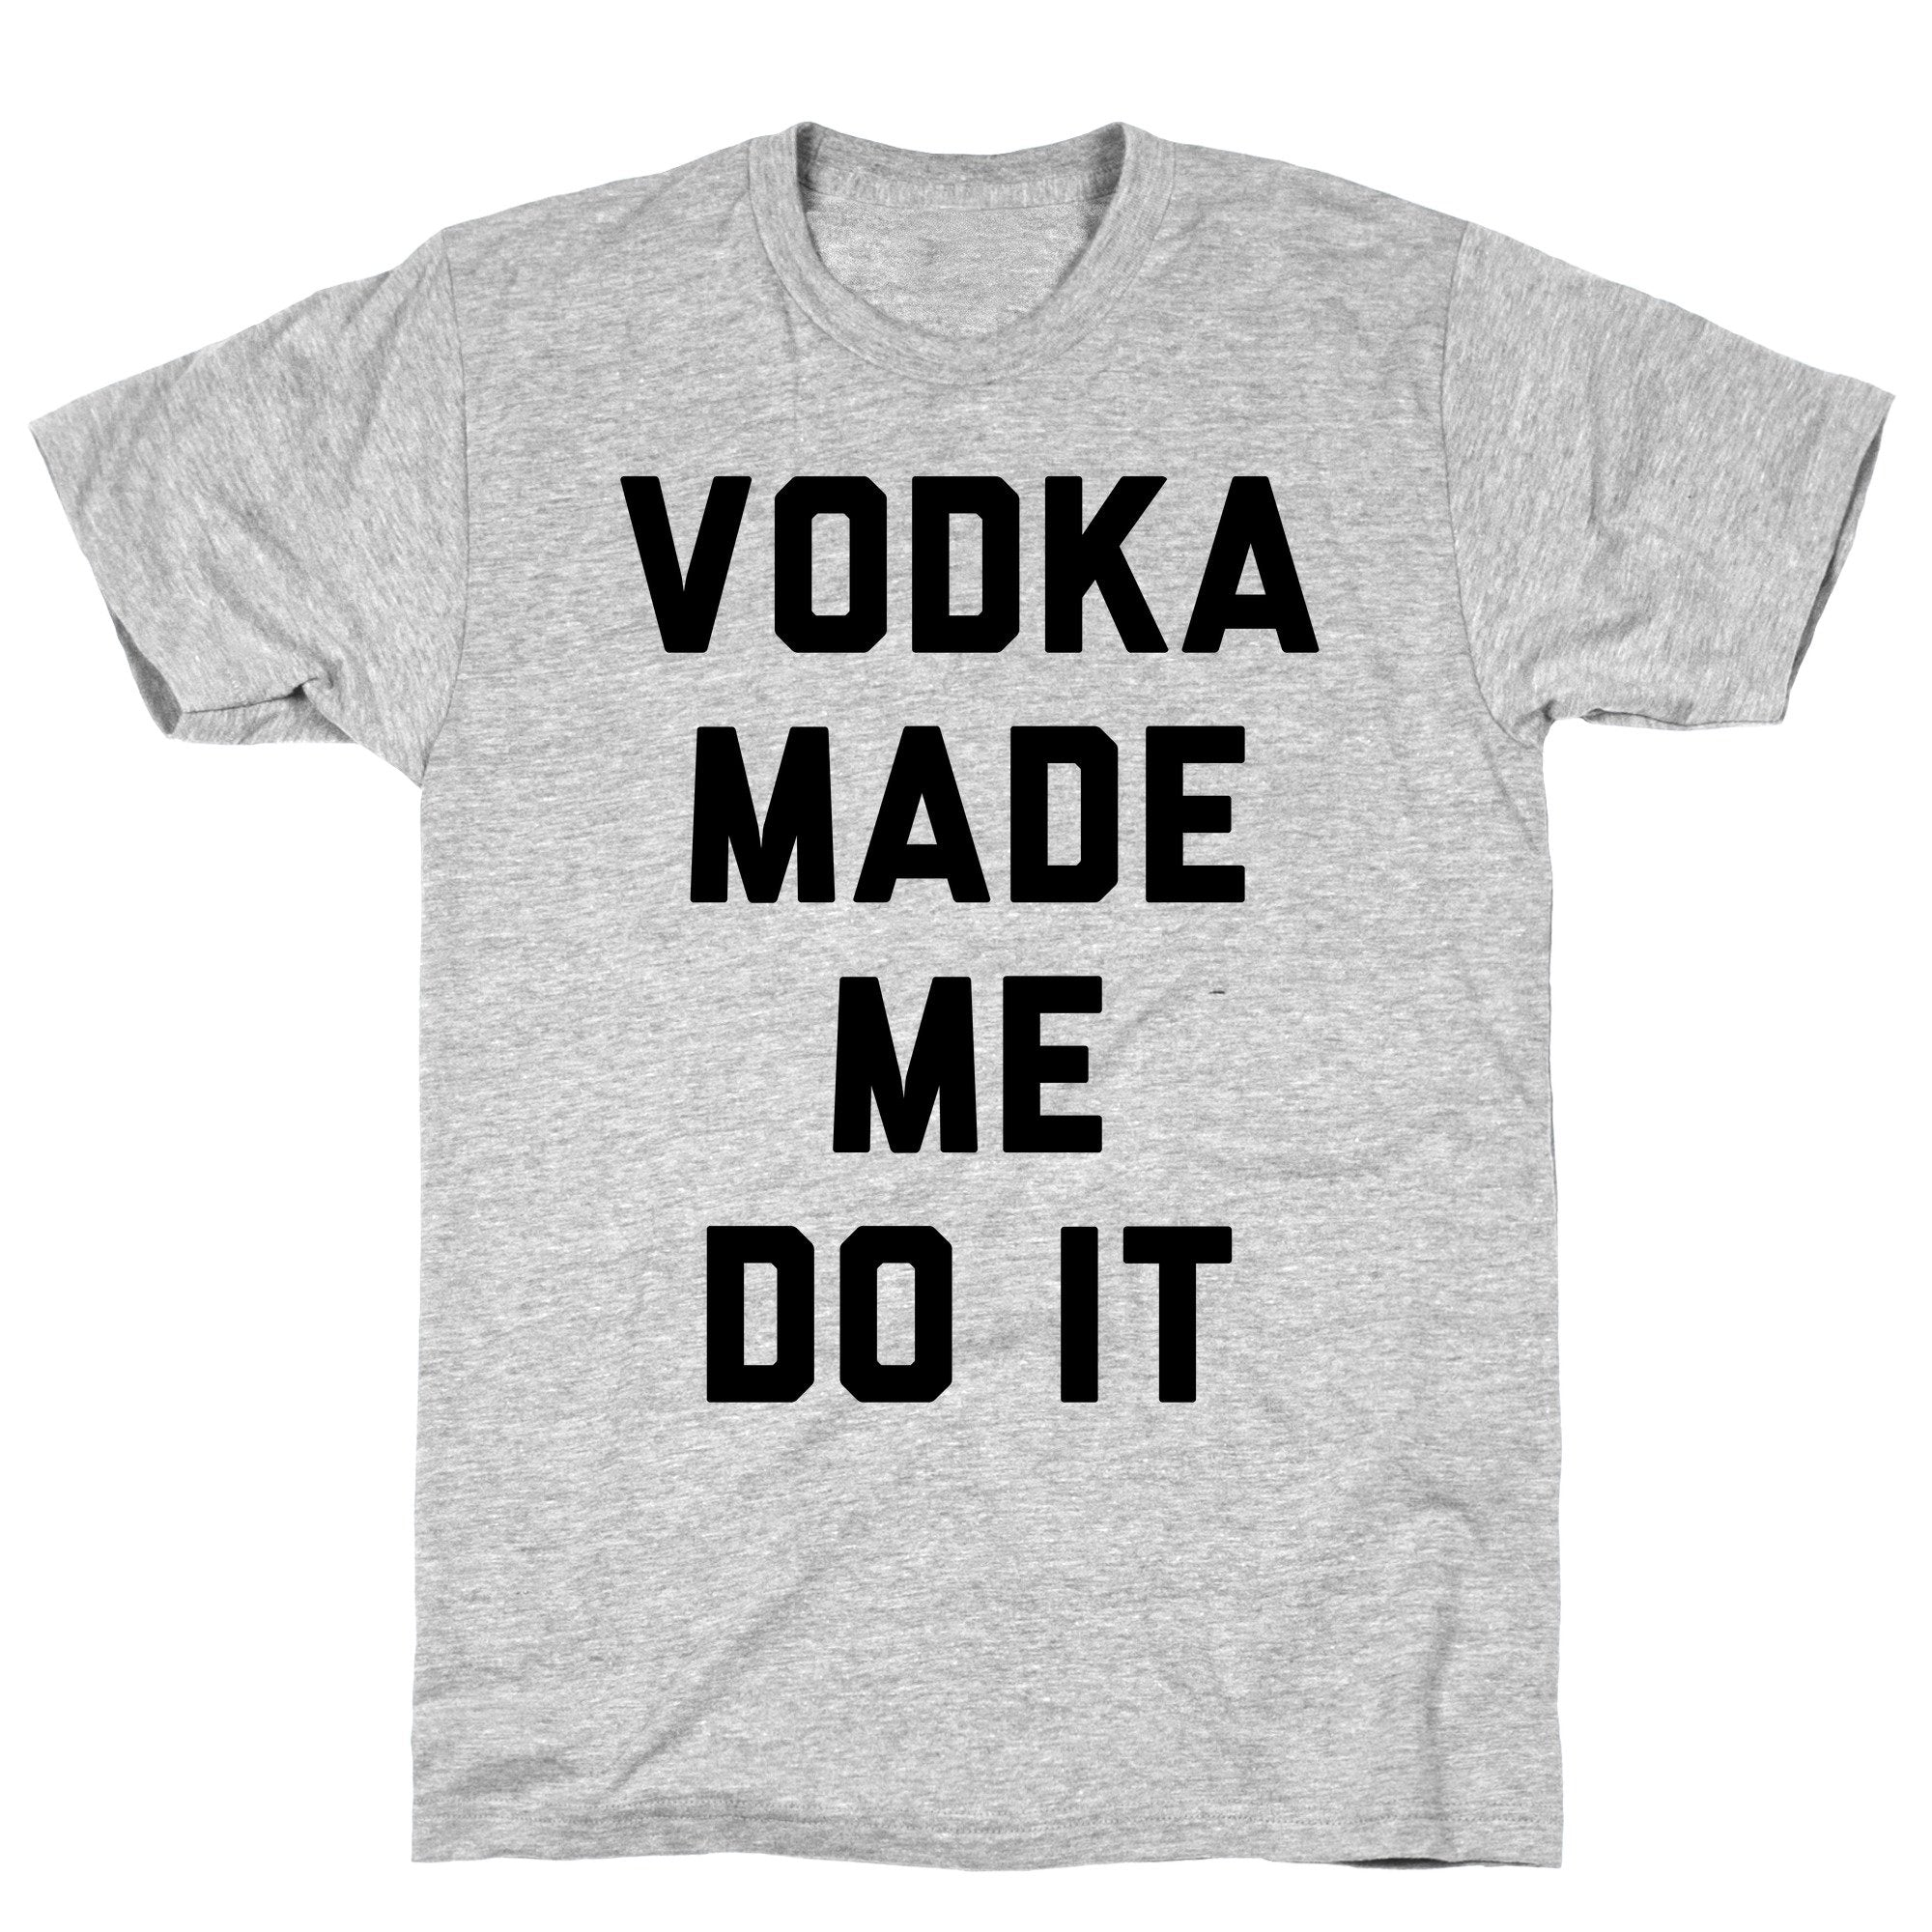 Vodka Made Me Do It Athletic Gray Unisex Cotton Tee by LookHUMAN